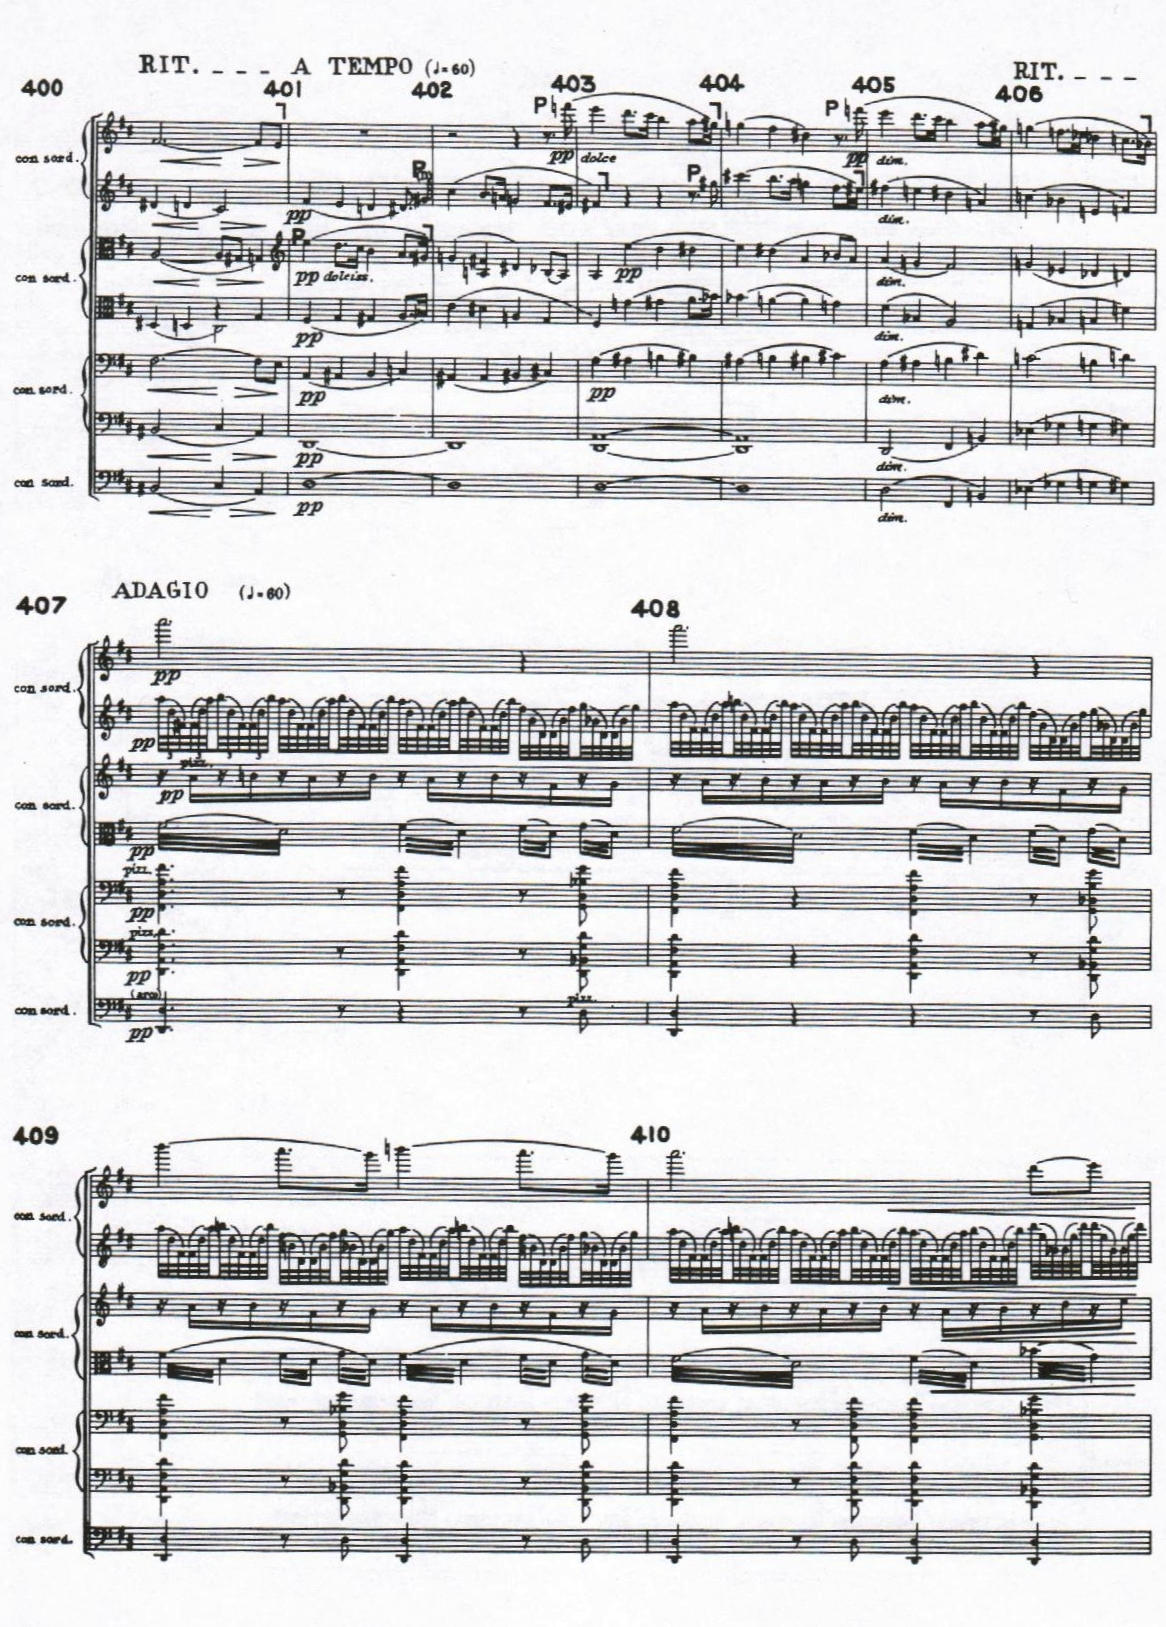 Laura chernaik phin 632013 4694 the dissonant chords in the lower voices in for example bars 409 and 410 create a crucial disturbing buzz hexwebz Choice Image